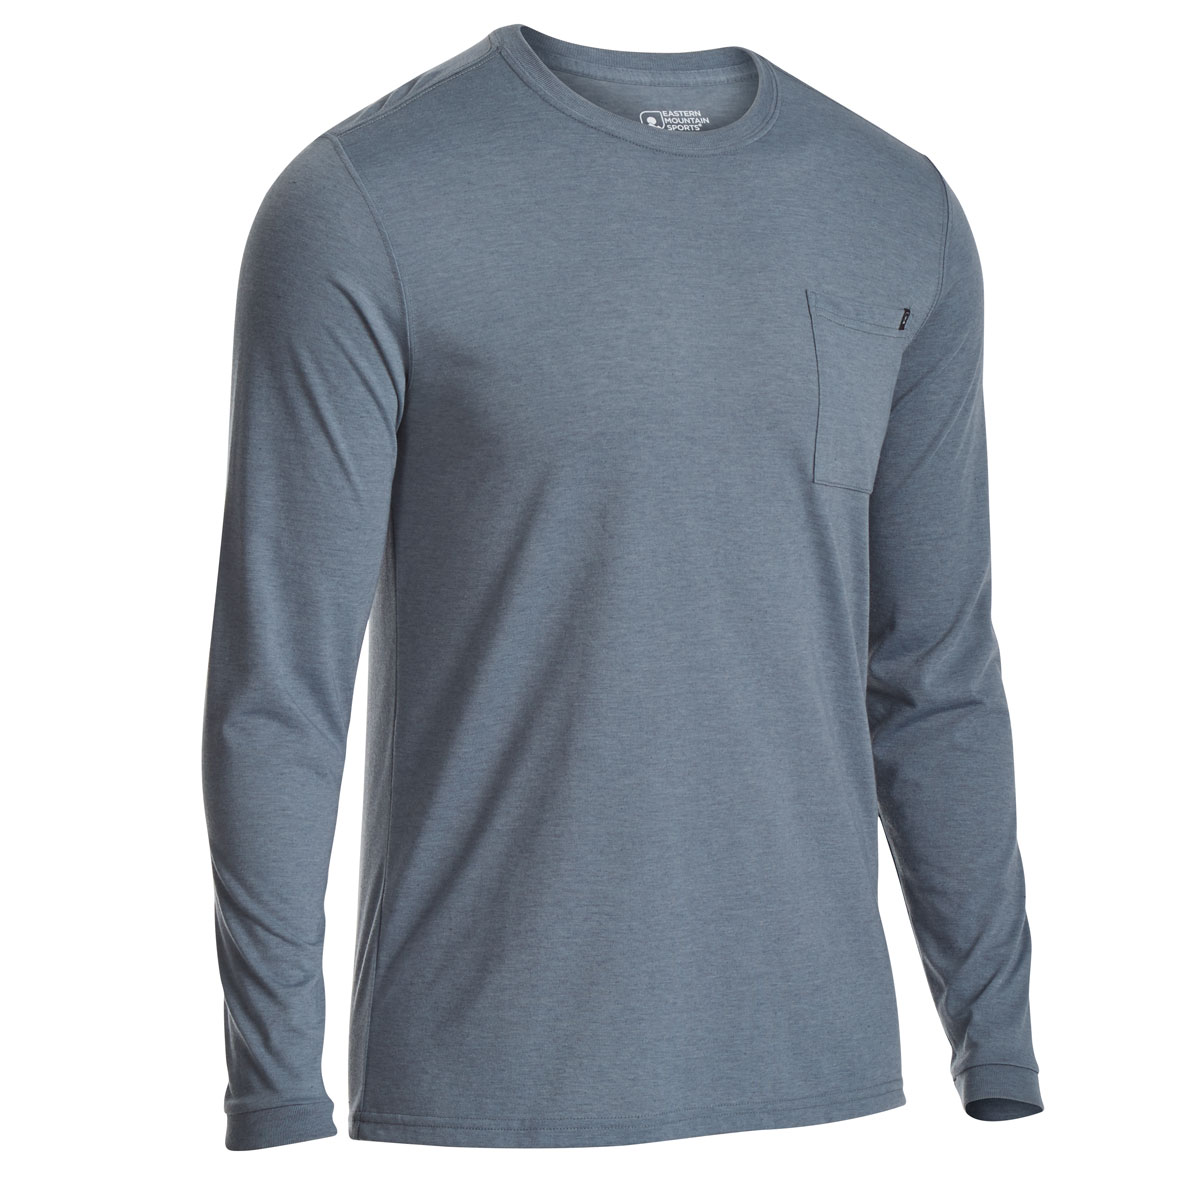 Ems Men's Techwick Vital Pocket Long-Sleeve Tee - Black, XL